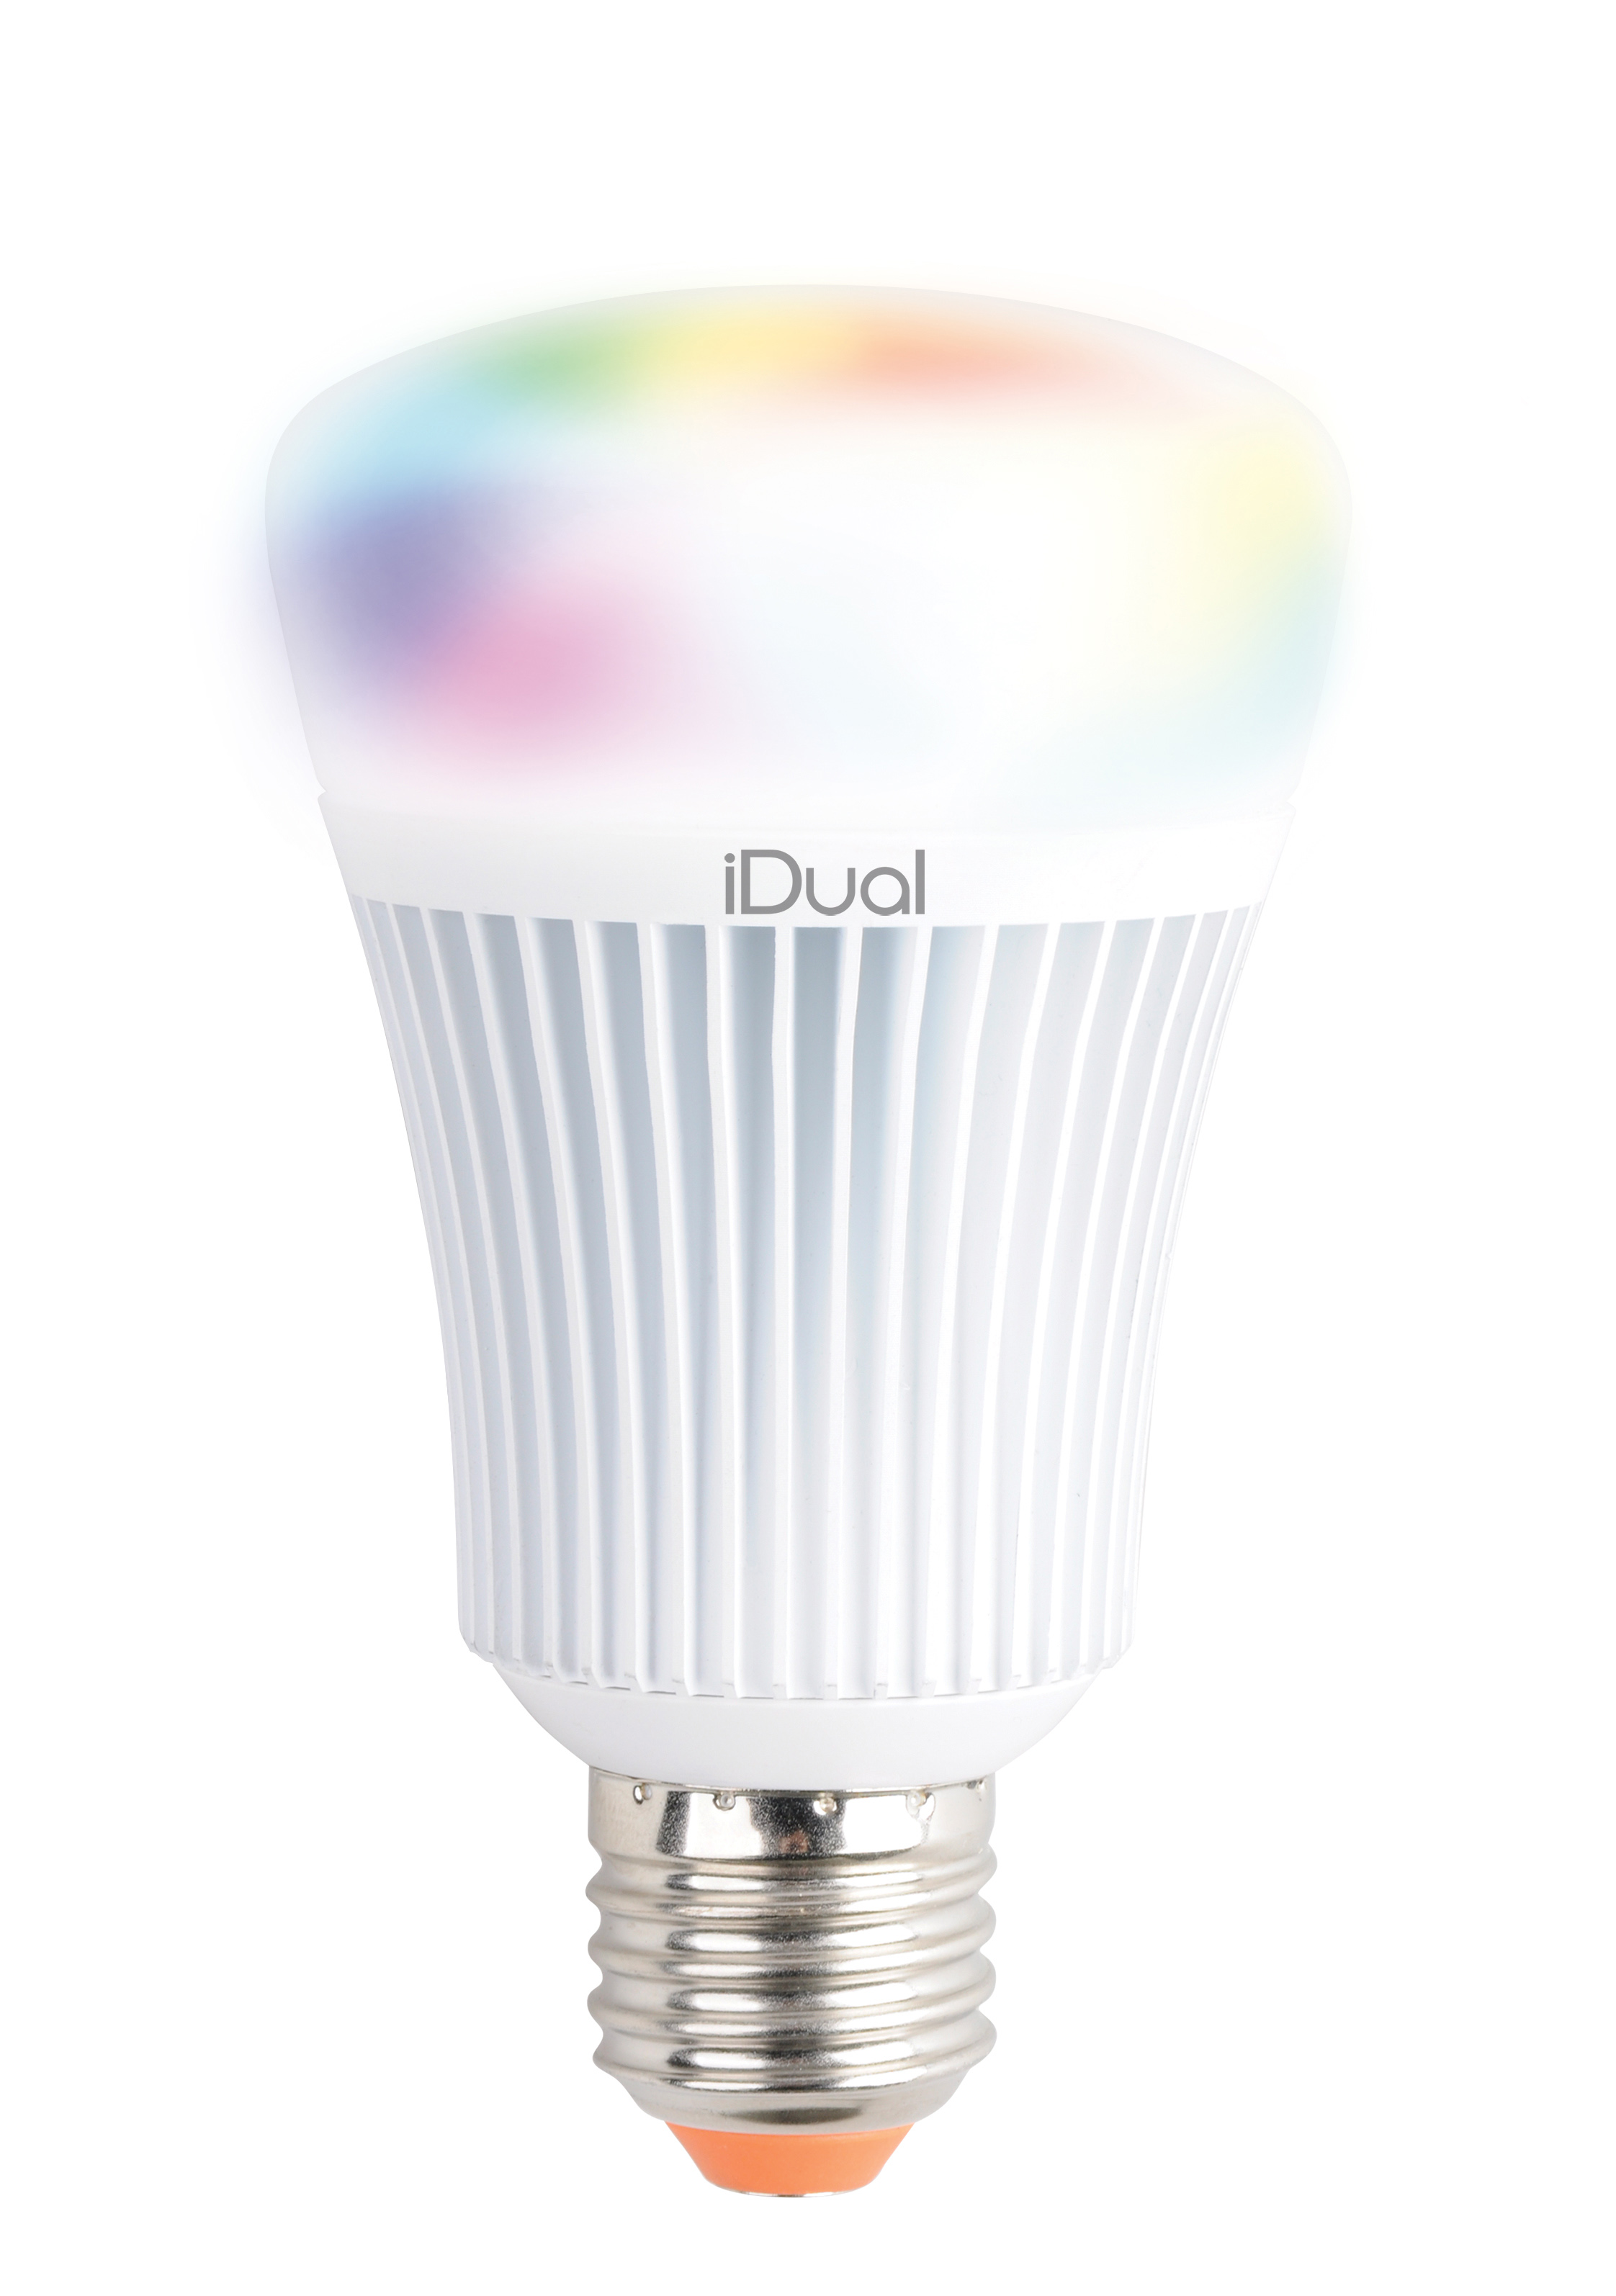 iDual has 10 types of bulbs, including the A E27